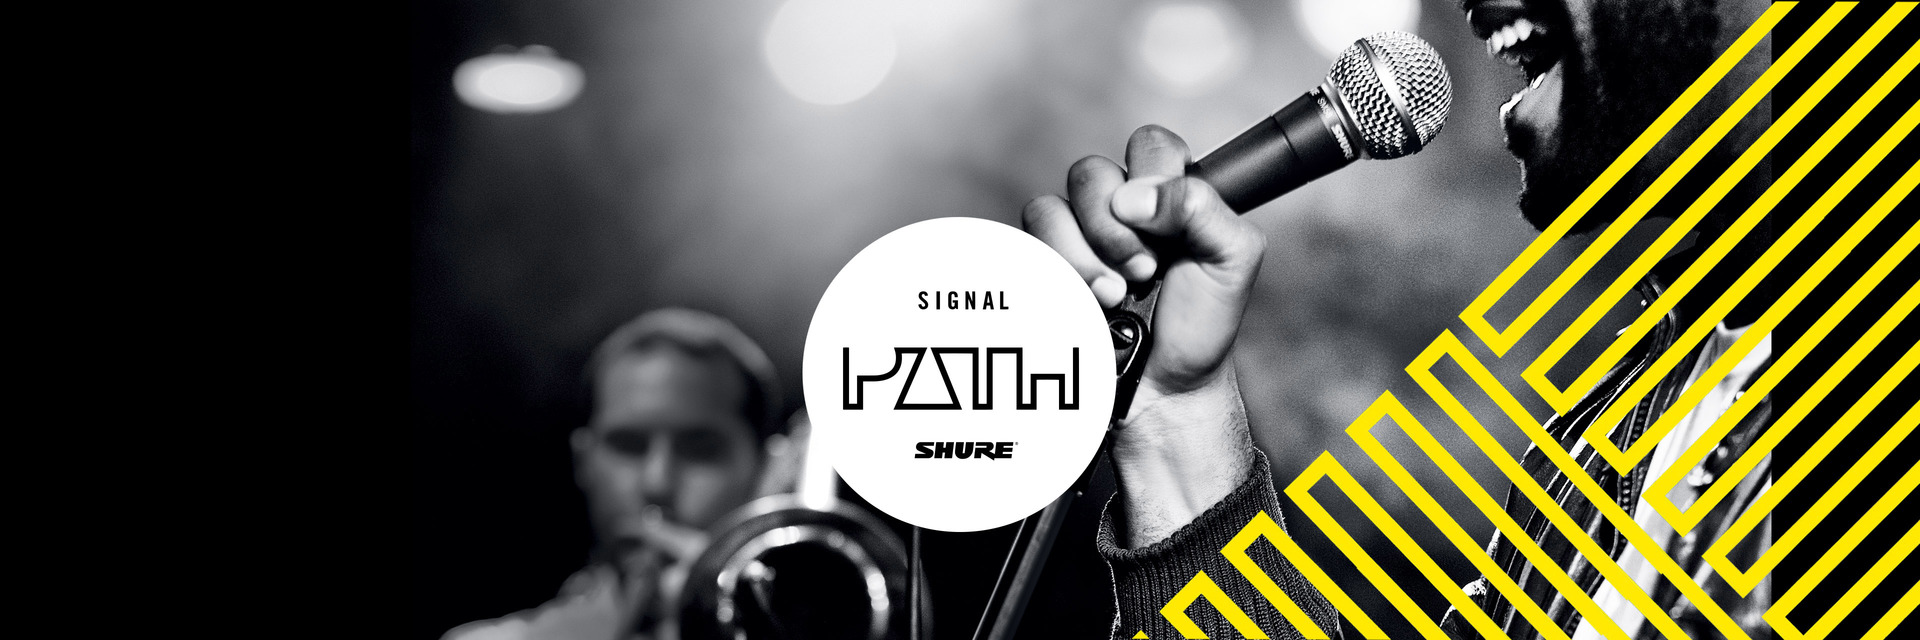 "News: Podcast-Serie ""Shure Signal Path"" gestartet"